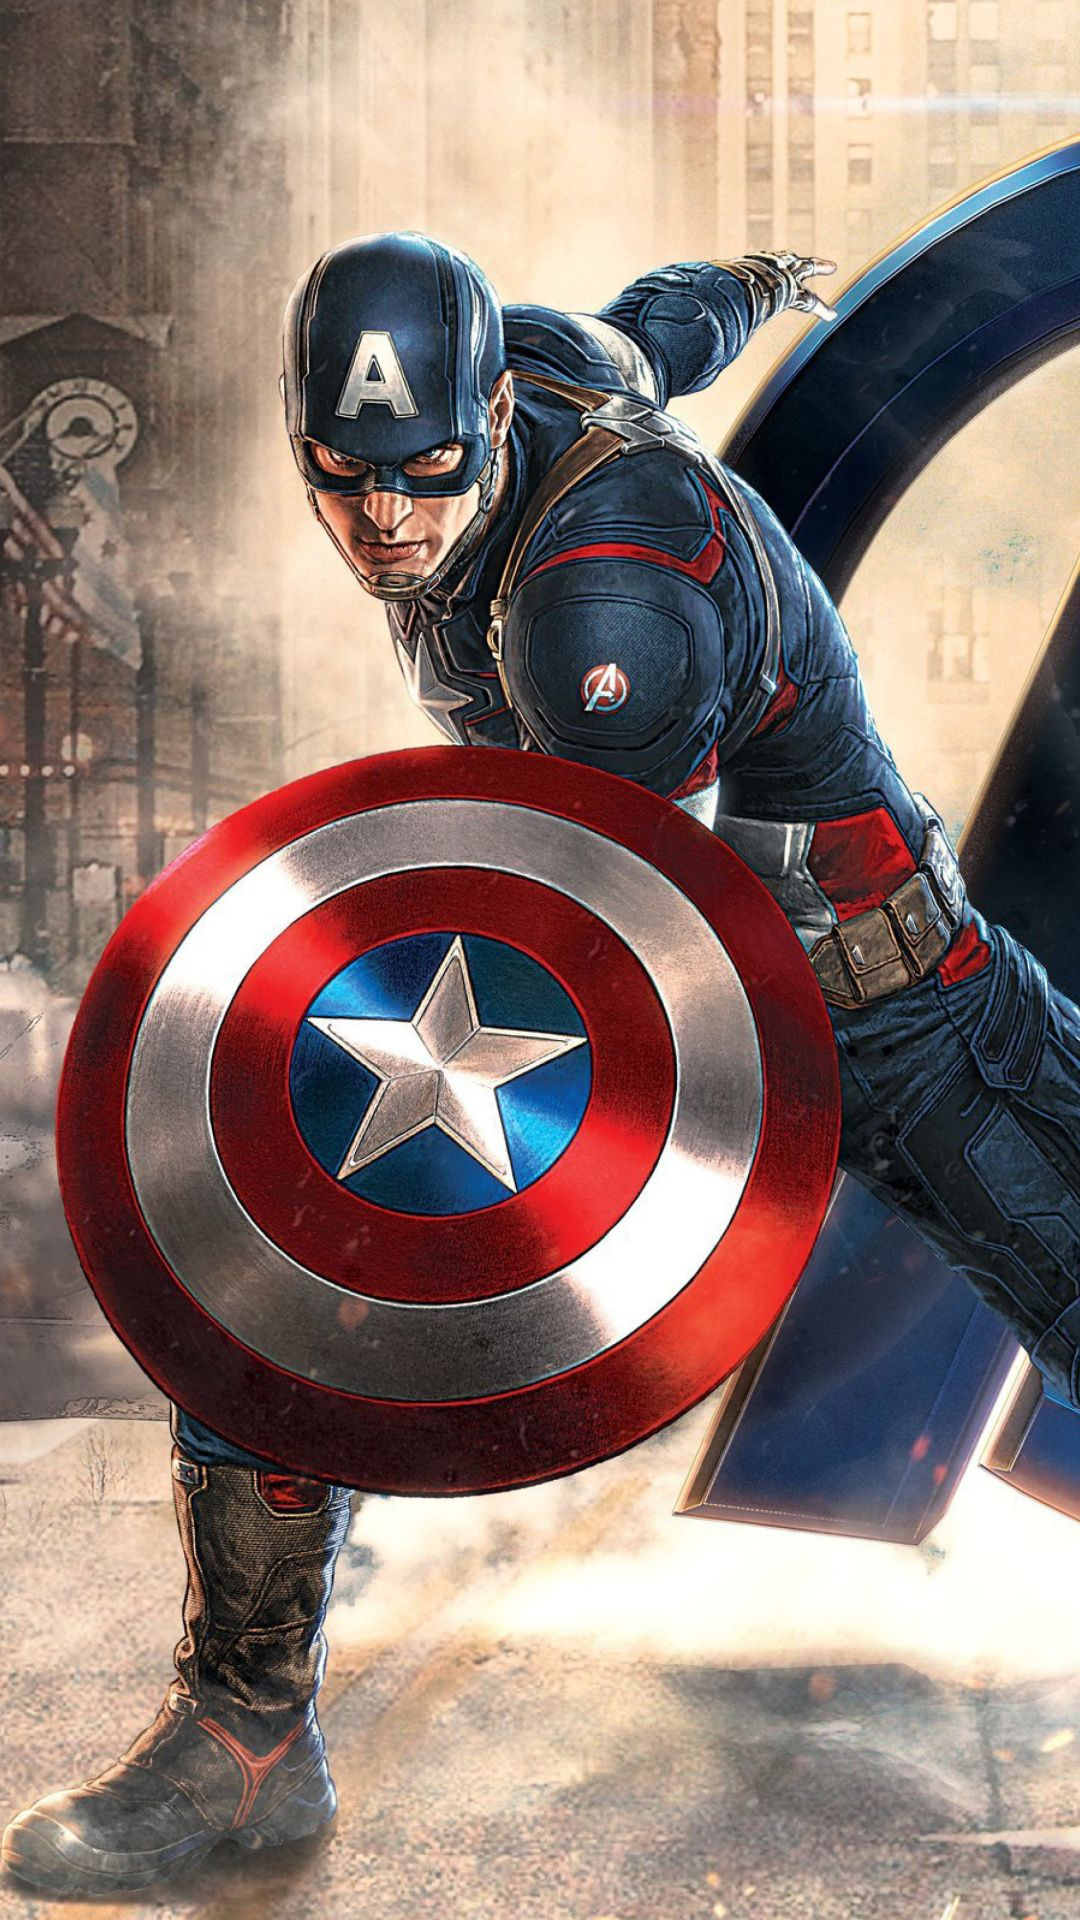 Captain America Wallpapers for Iphone 7, Iphoneplus